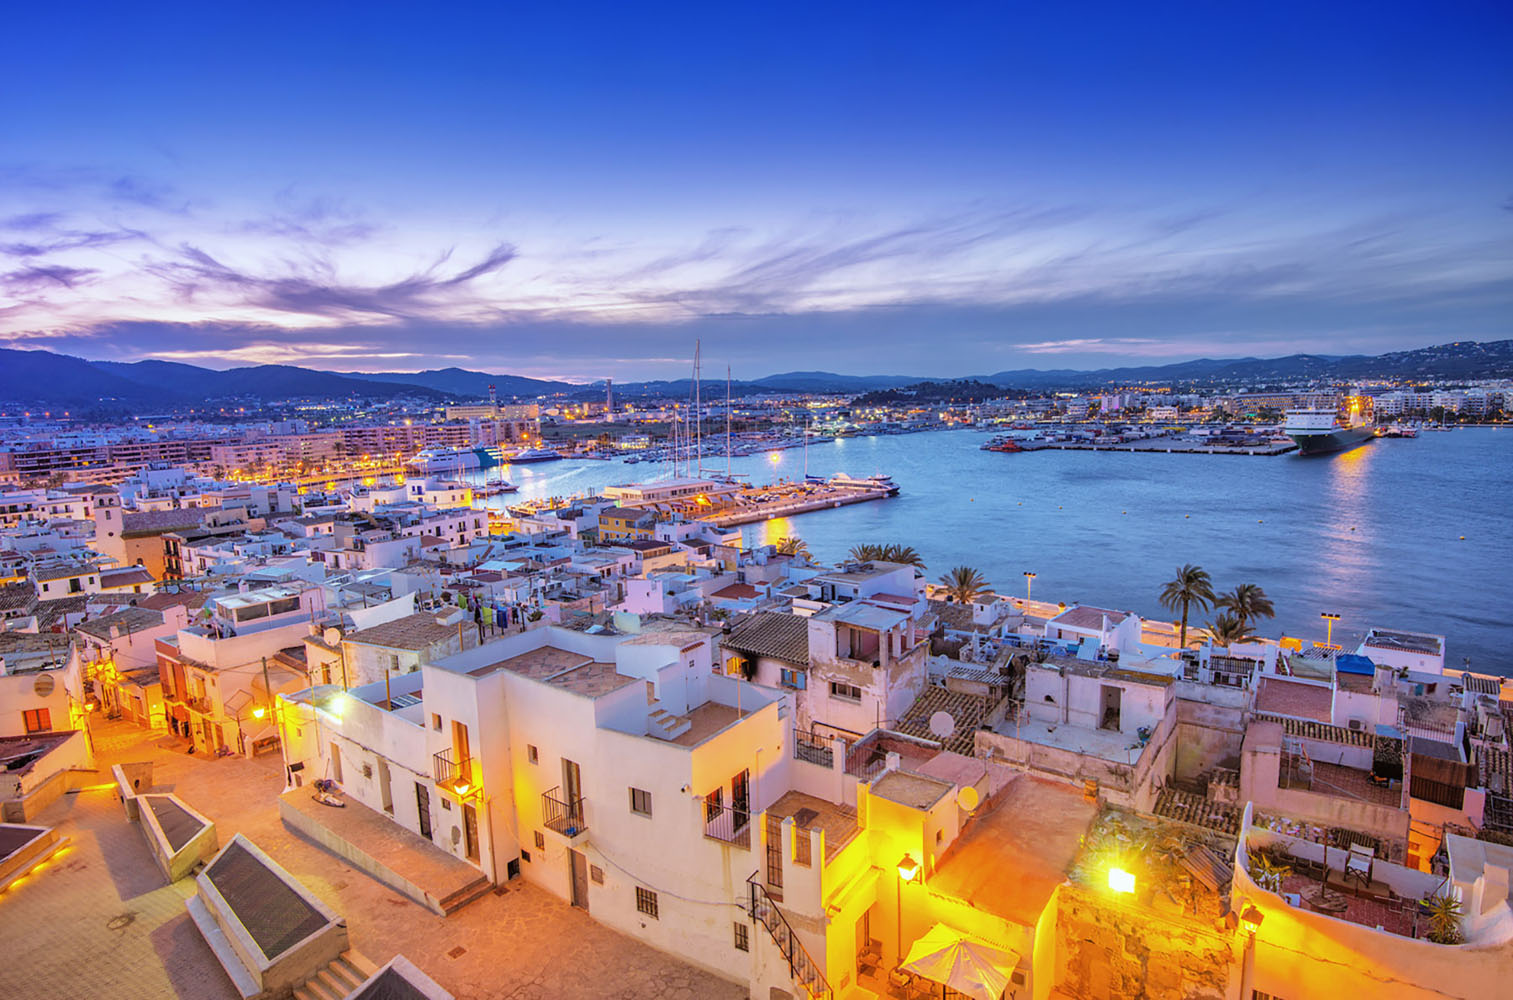 Ibiza, Spain is renowned for its lively nightlife scene.